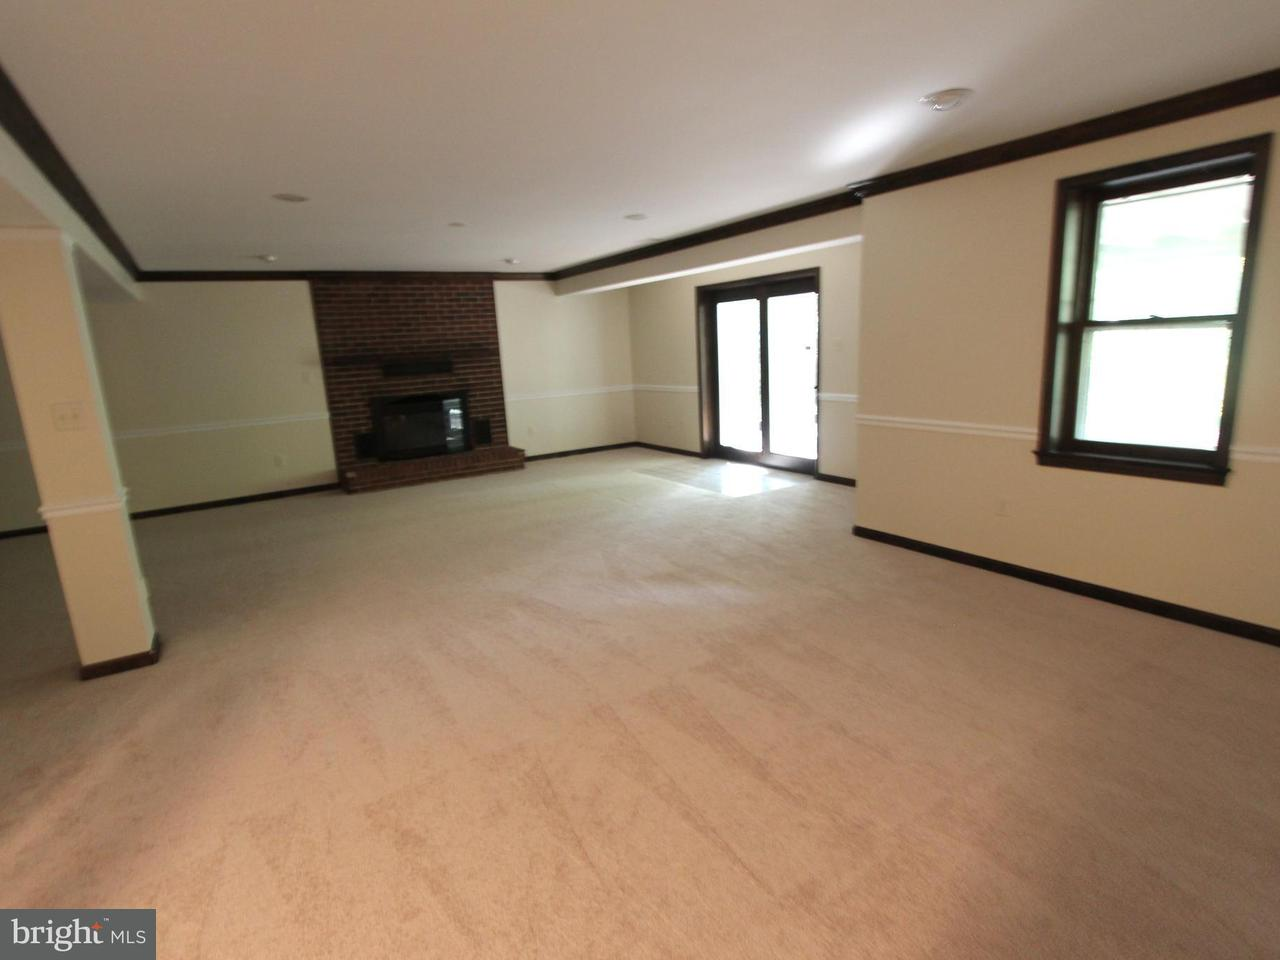 Additional photo for property listing at 11692 HOLLYVIEW Drive 11692 HOLLYVIEW Drive Great Falls, Virginia 22066 United States